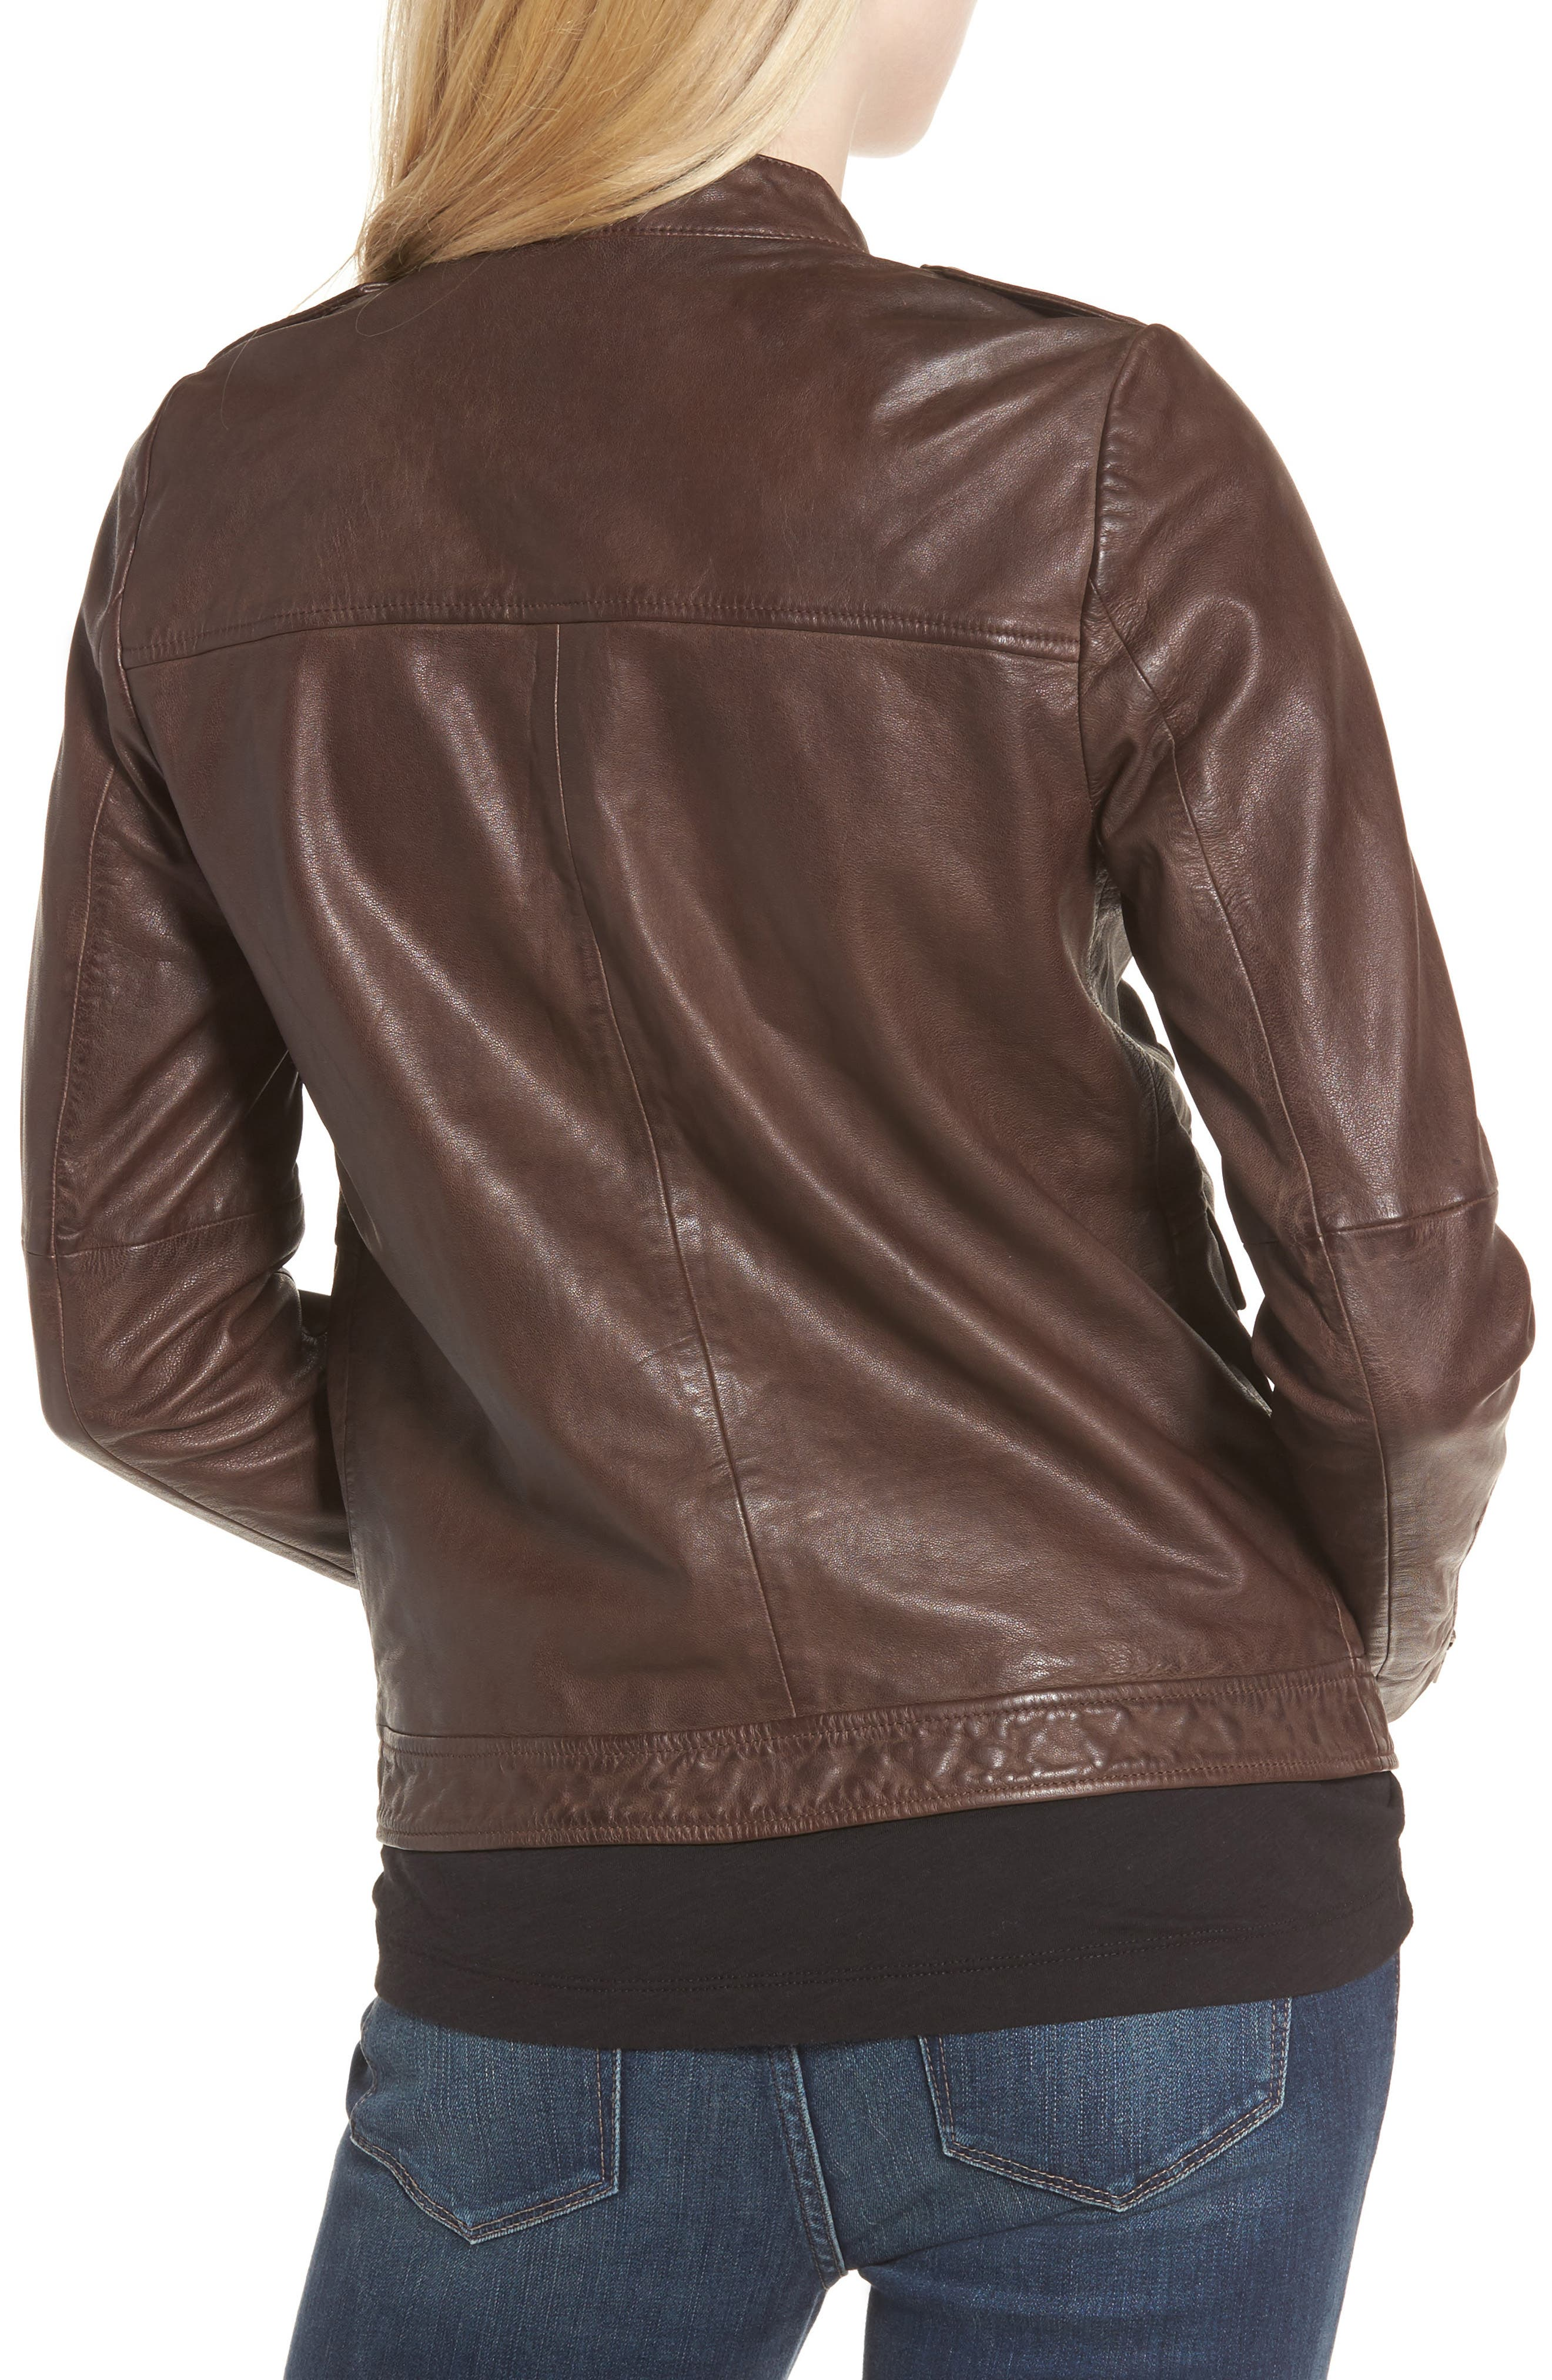 Alternate Image 2  - Hinge Pocket Detail Leather Jacket